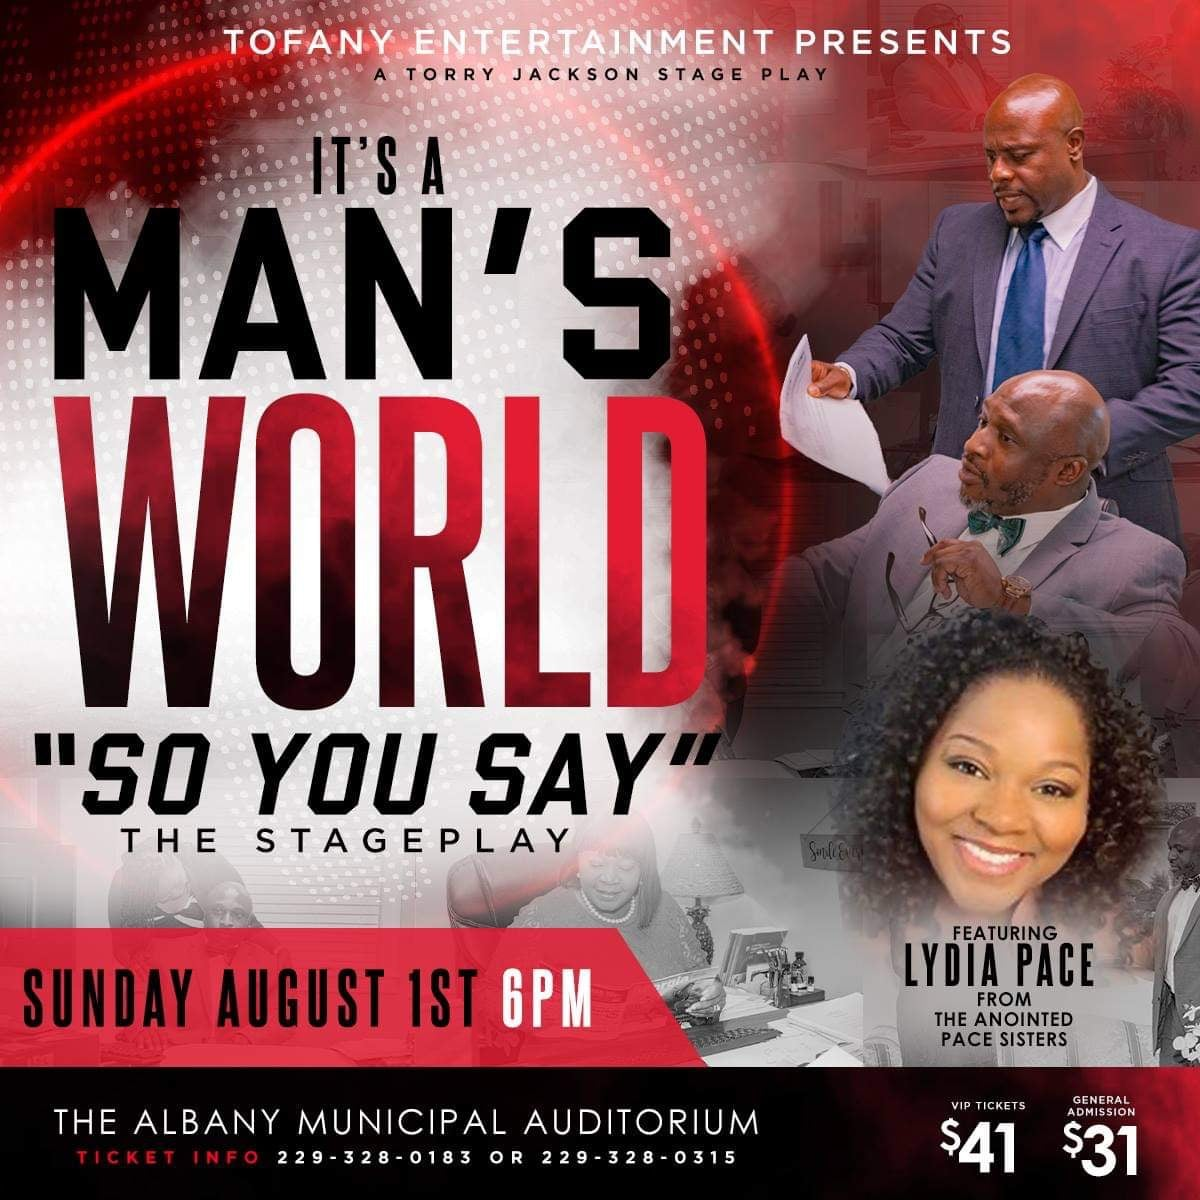 It's A Man's World Stageplay